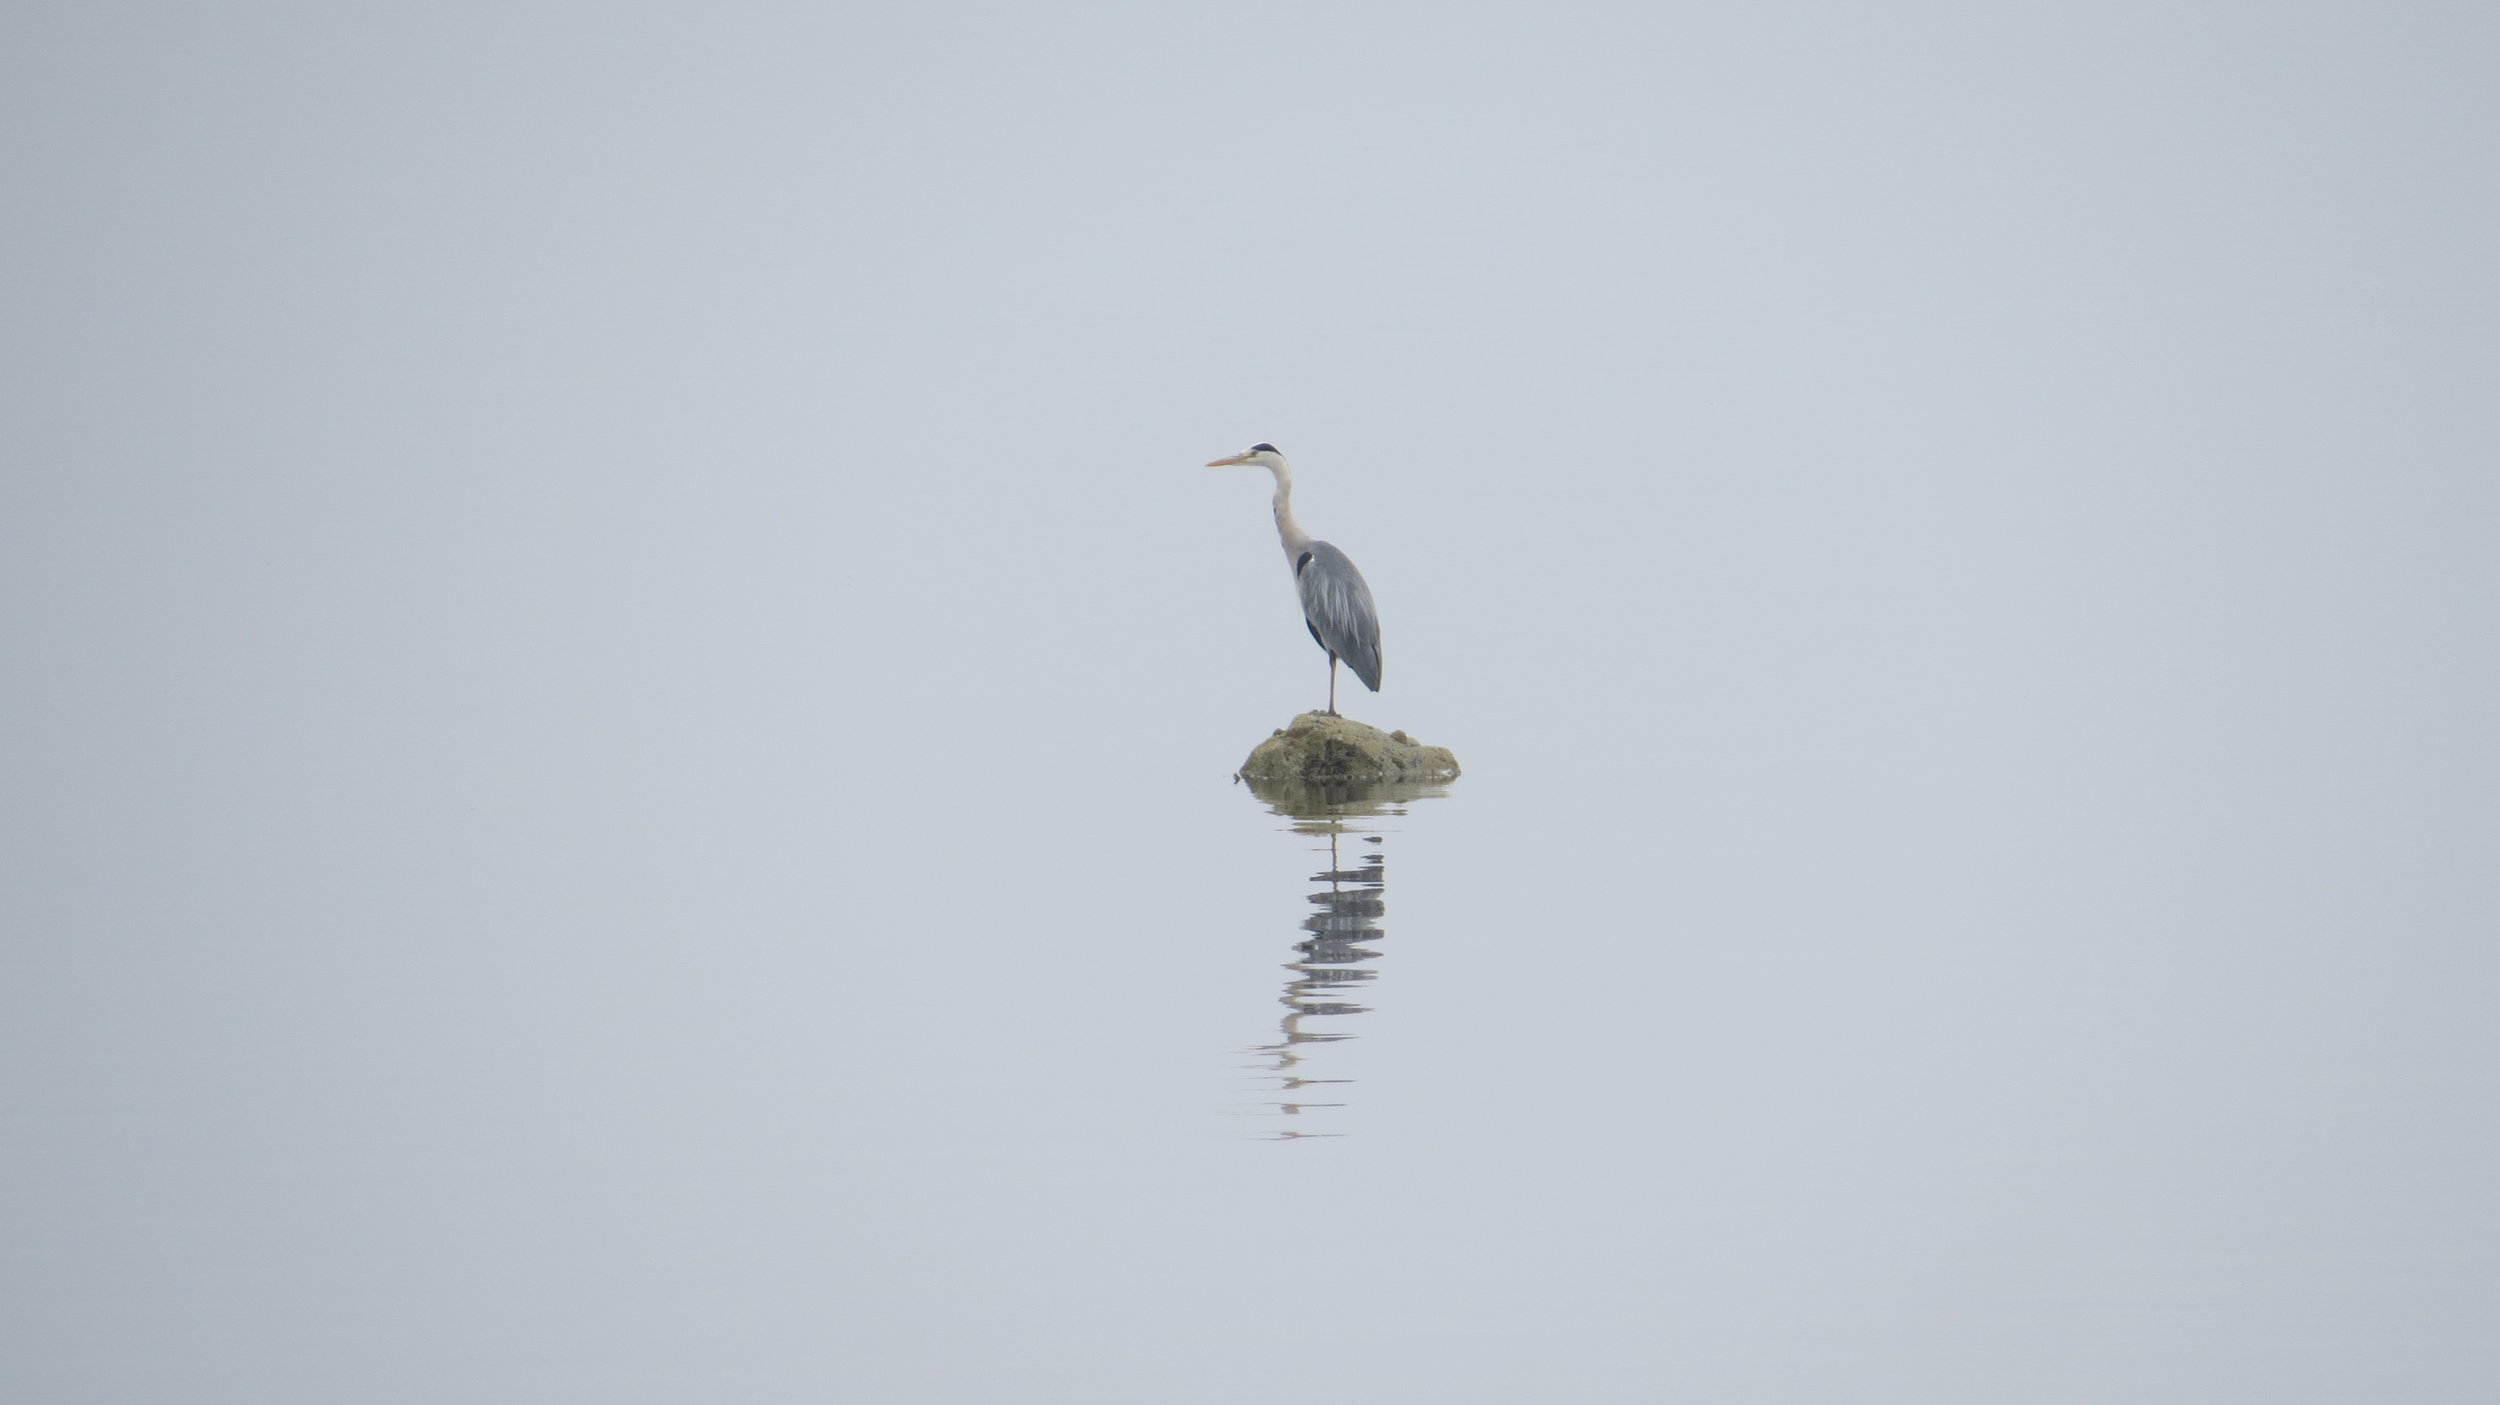 Heron & Reflection